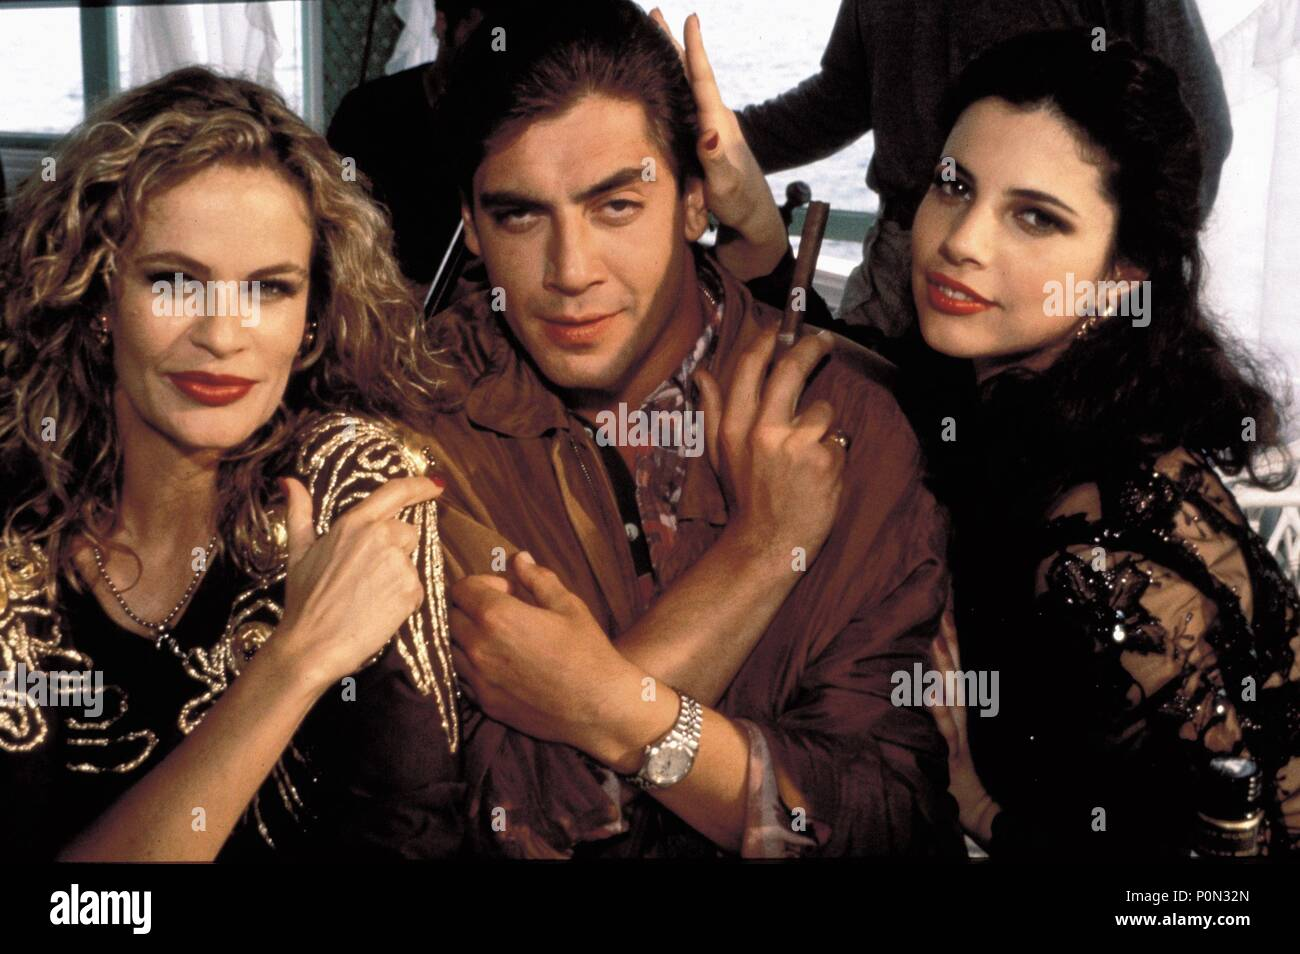 Original Film Title: HUEVOS DE ORO.  English Title: GOLDEN BALLS.  Film Director: JUAN JOSE BIGAS LUNA.  Year: 1993.  Stars: JAVIER BARDEM; MARIBEL VERDU. Credit: LOLAFILMS / Album - Stock Image